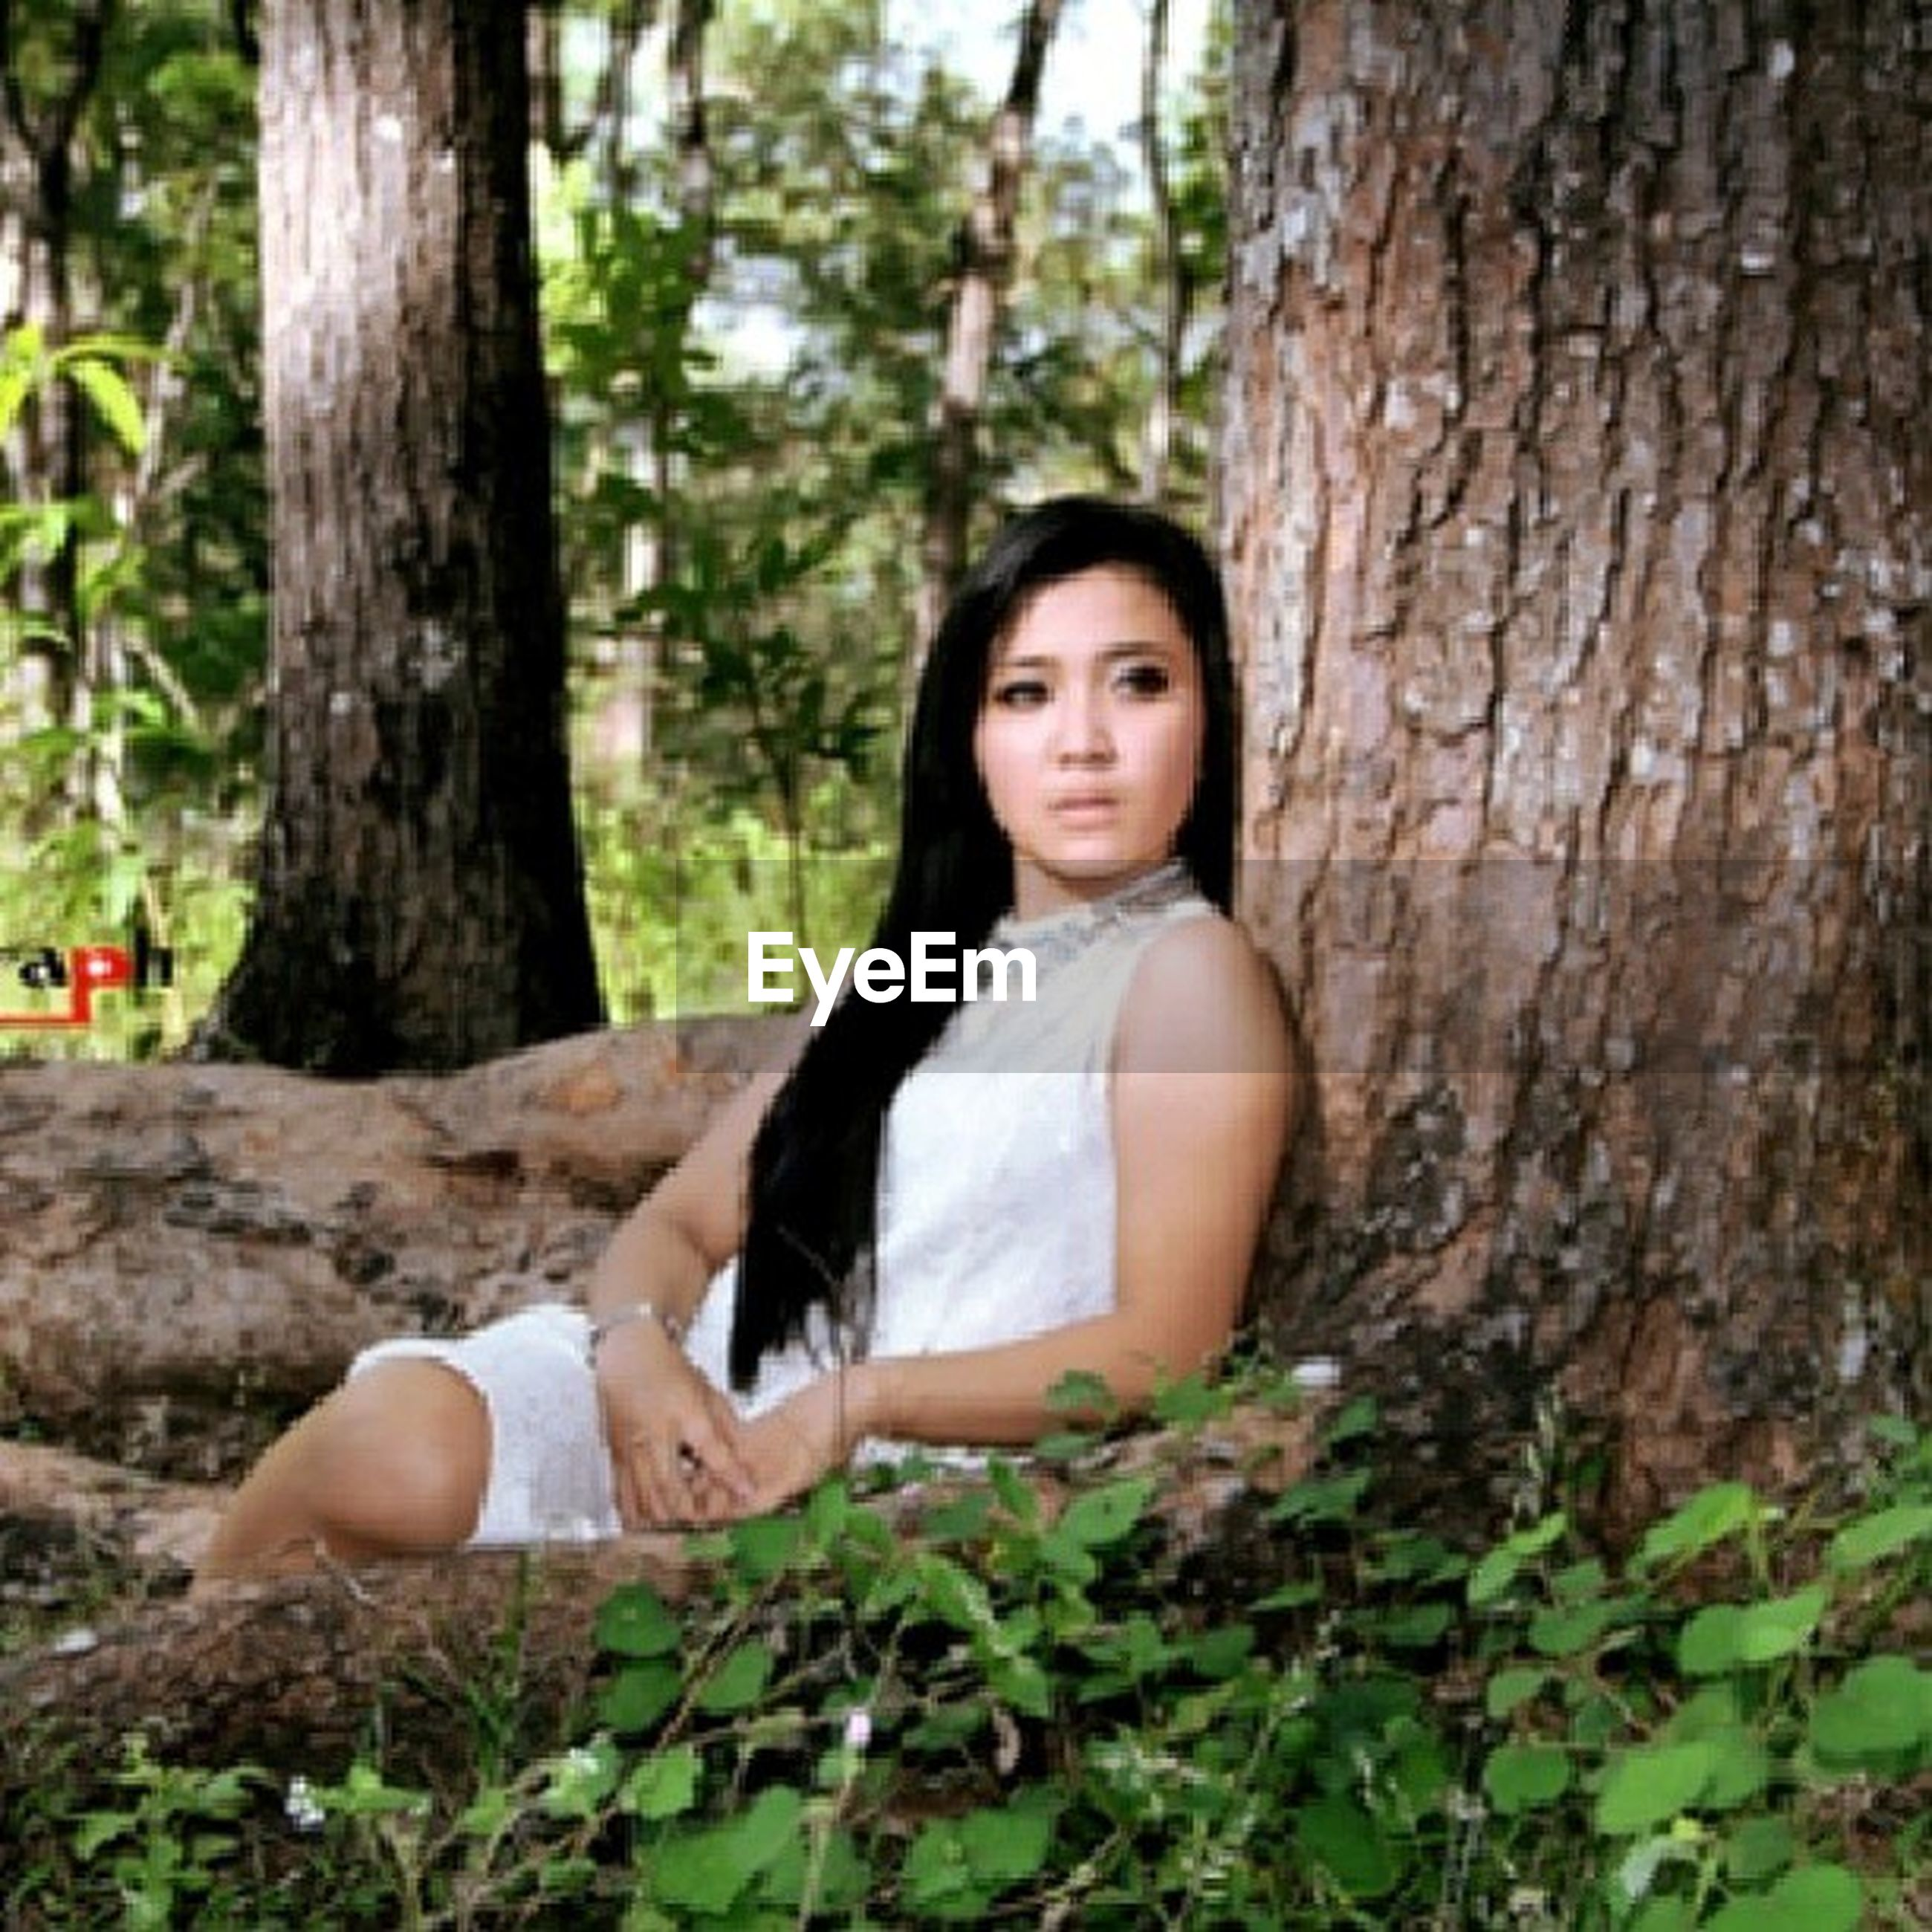 young adult, tree, young women, forest, person, portrait, lifestyles, leisure activity, looking at camera, tree trunk, casual clothing, front view, smiling, sitting, three quarter length, standing, happiness